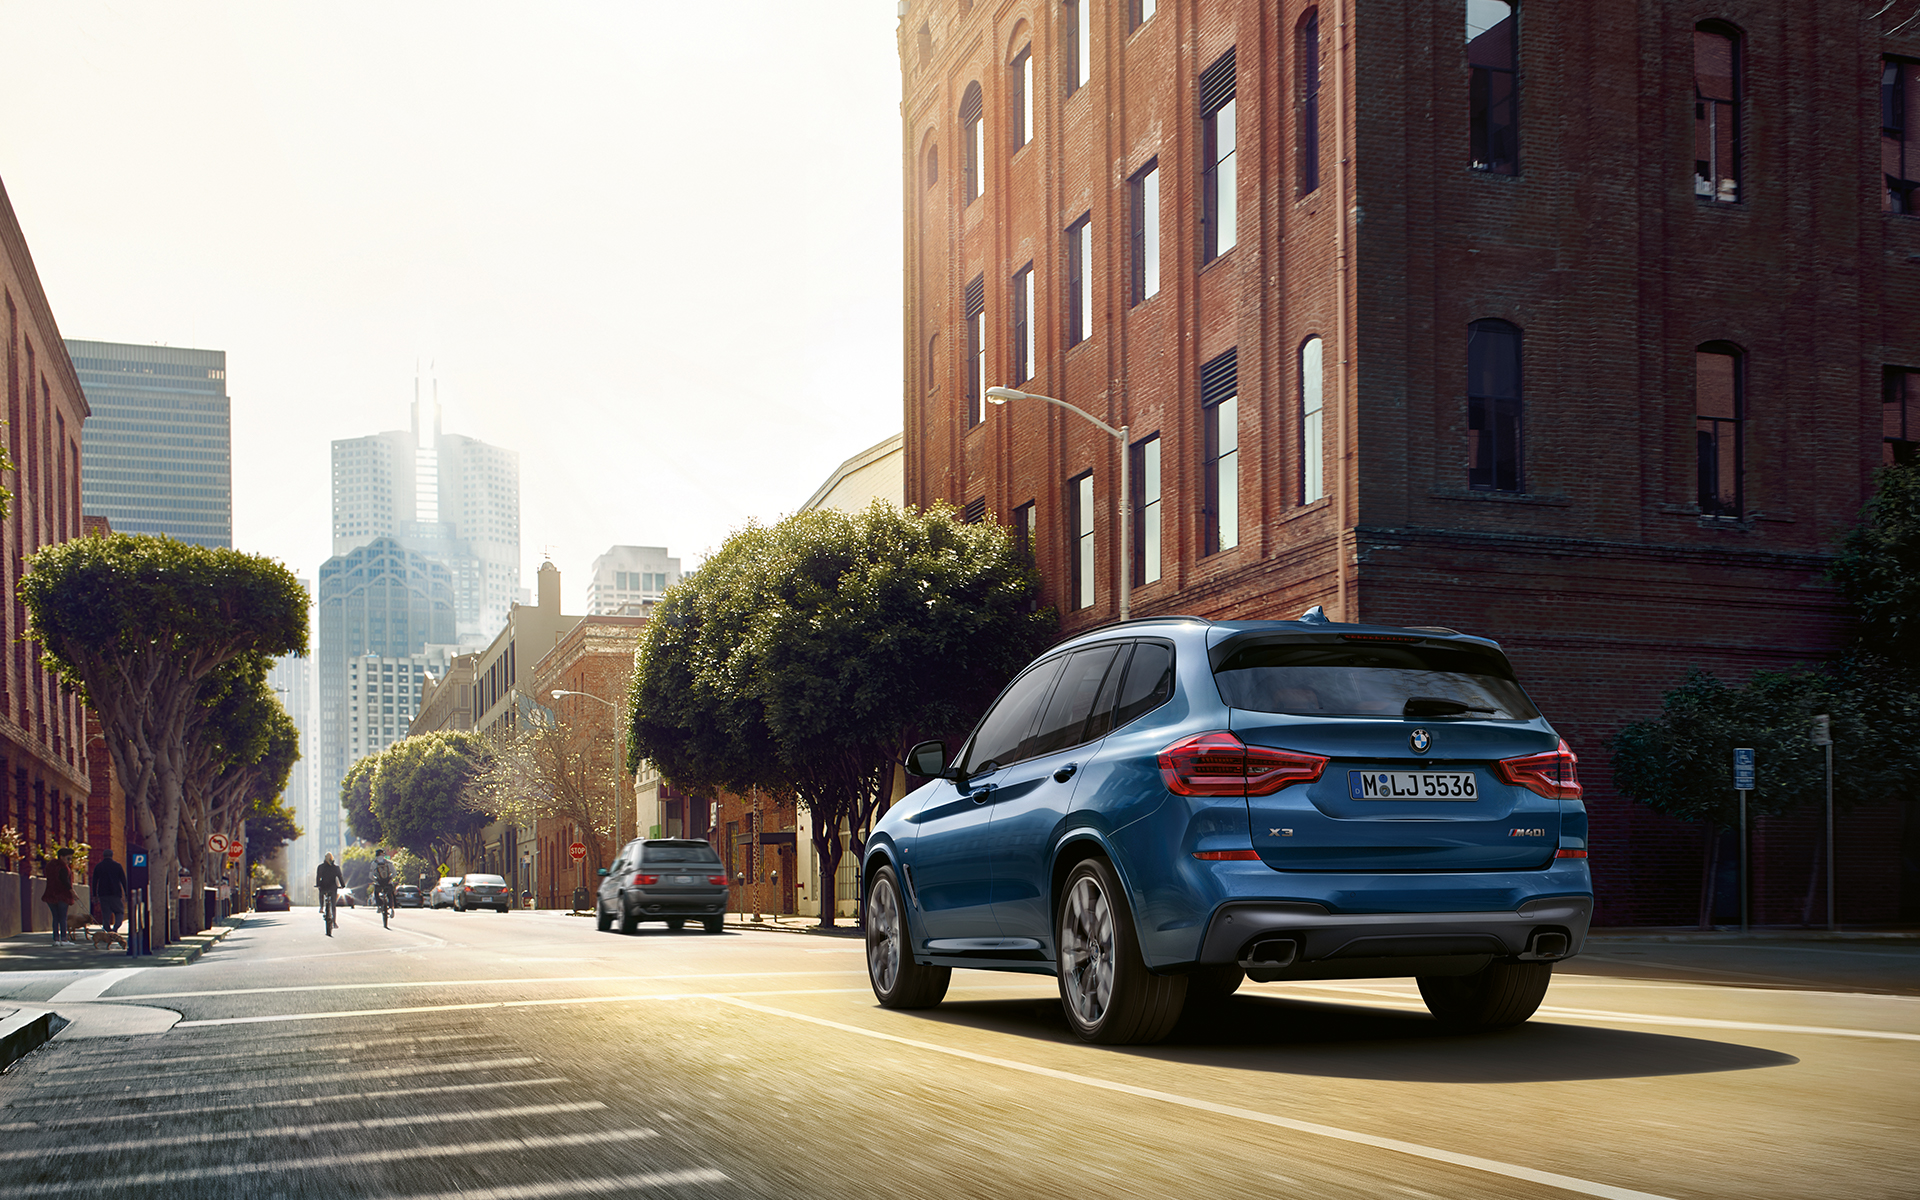 BMW X Series X3: rear view during city drive.